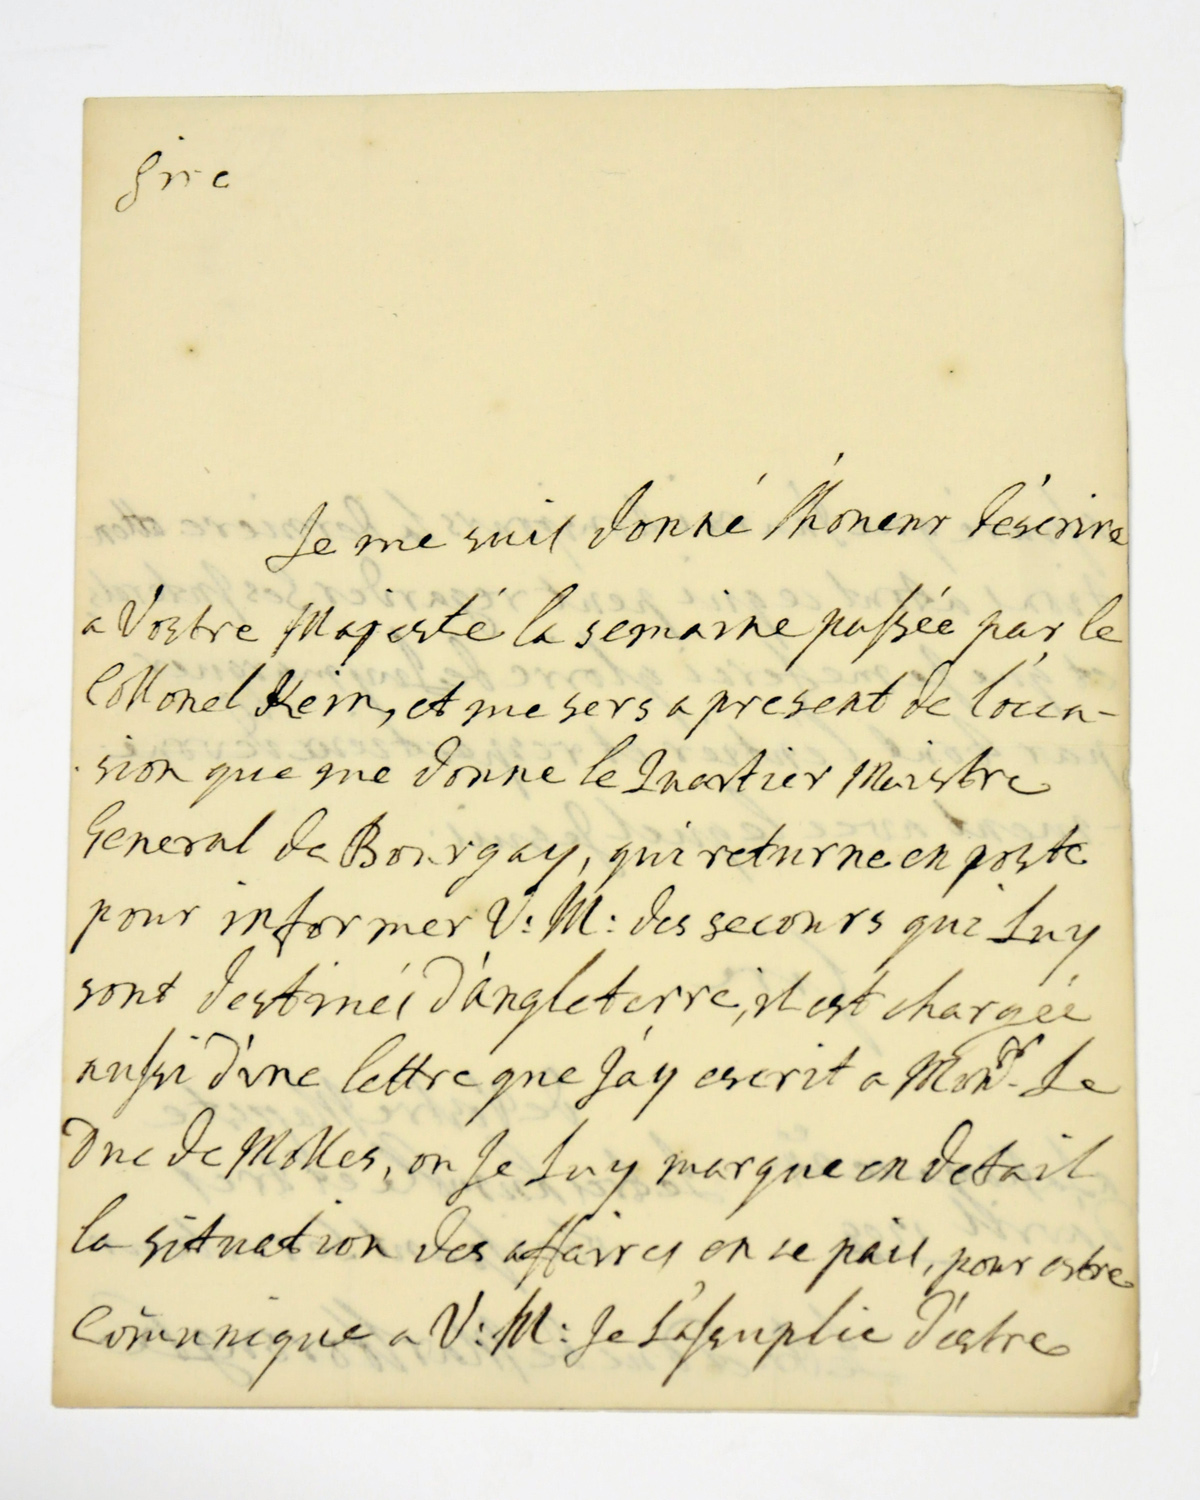 MARLBOROUGH, John Churchill, 1st Duke of (1650-1722). Autograph letter signed ('Marlborough') to [Charles III of Spain], The Hague, 24 April 1709, writing to inform the king of the 'secours qui Luy sont destinés d'Angleterre'; General de Bourgay will bear a letter setting out 'la situation des affaires en se pais', ending with assurances of his attachment, 2 pages, 4to.